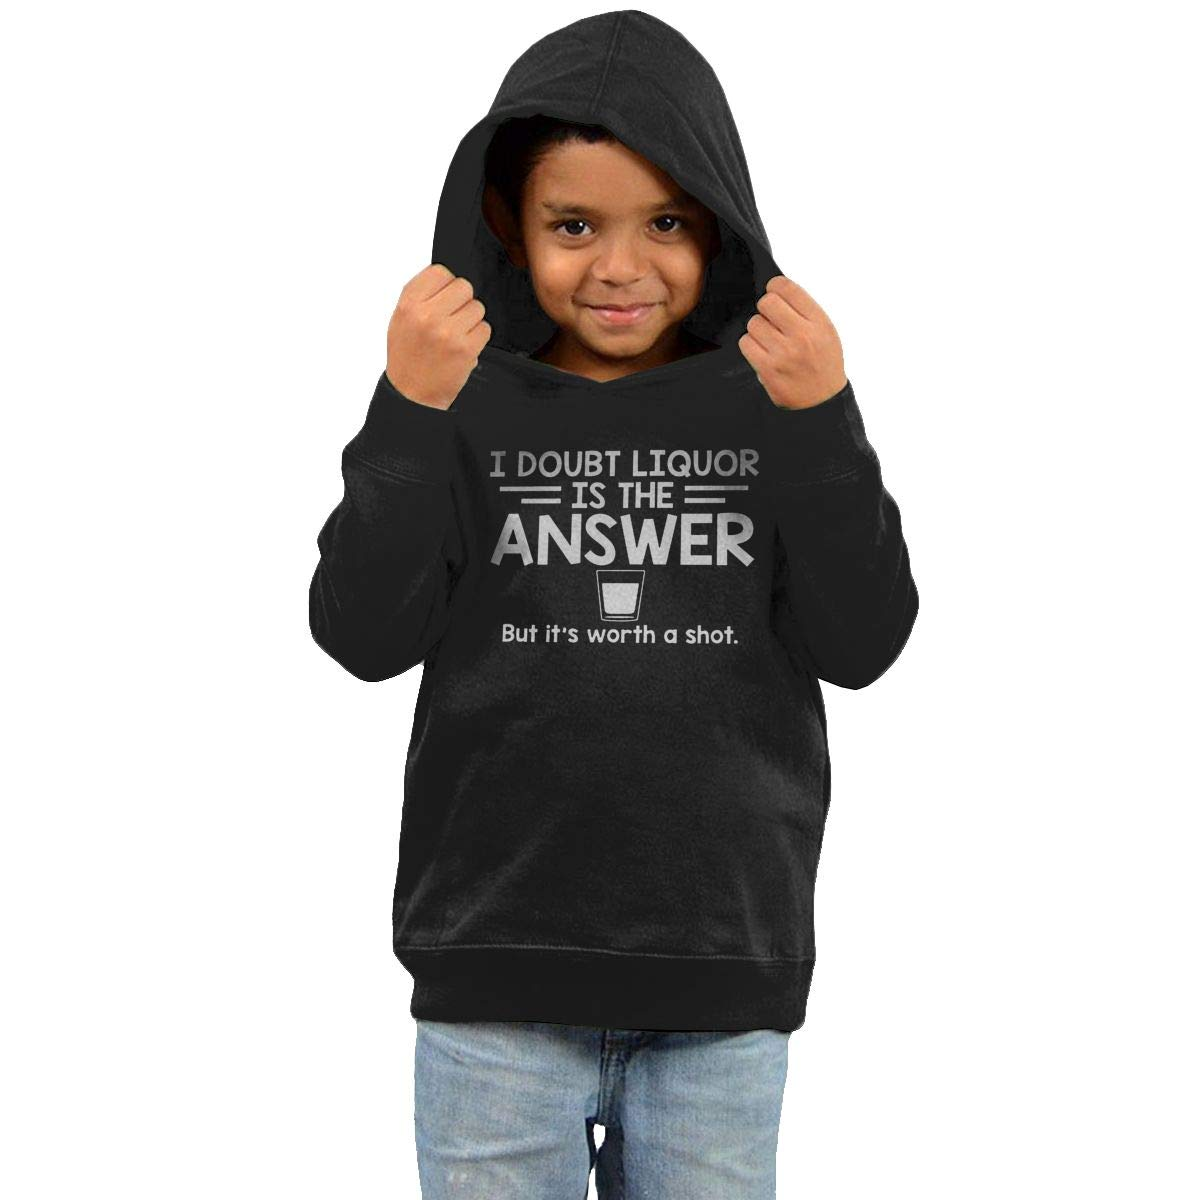 Childrens Hooded Sweater I Doubt That Liquor is The Answer But Its Worth A Shot Girl Sweater Black